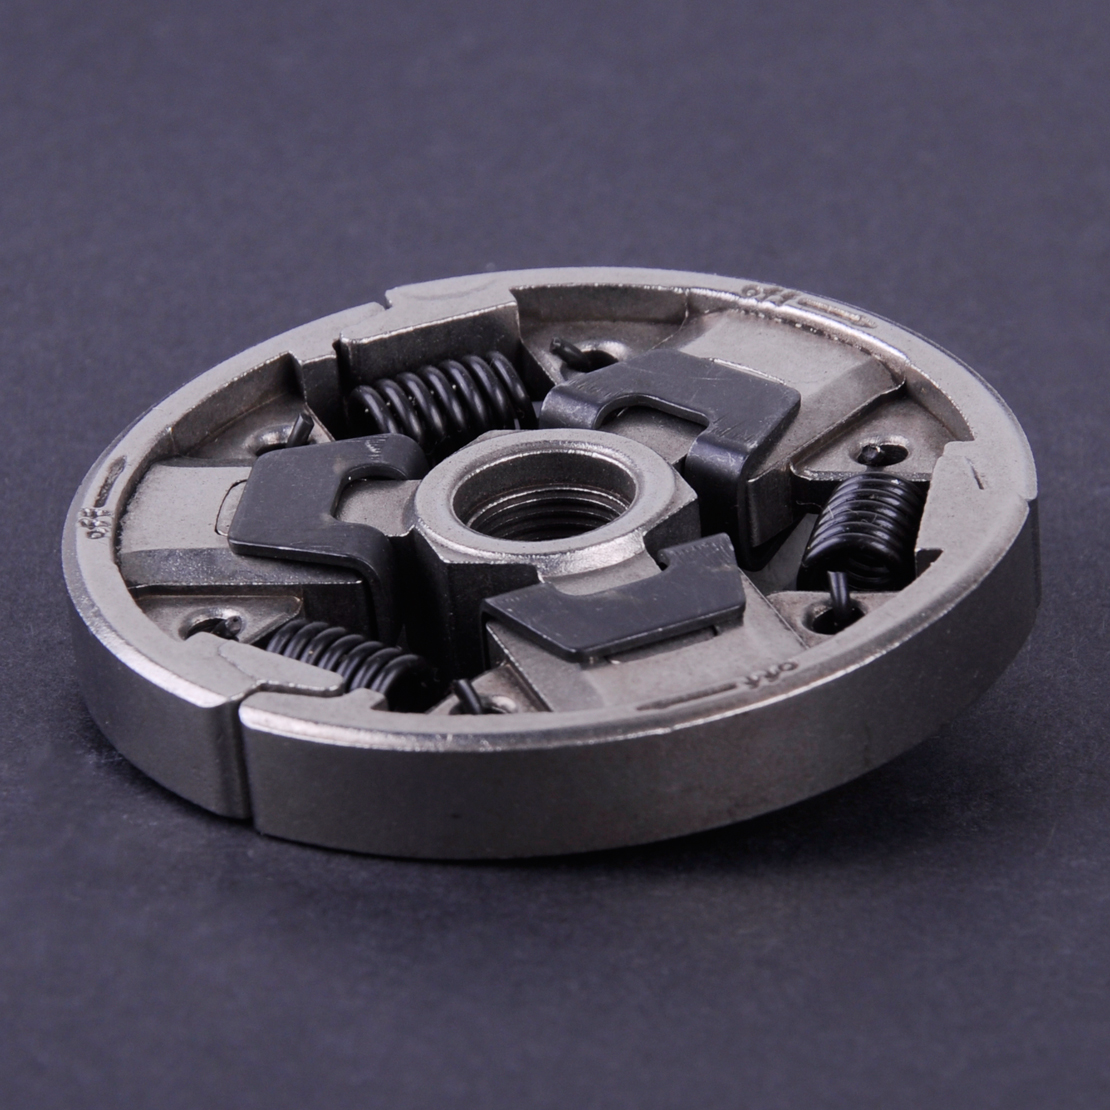 LETAOSK New Chainsaw Clutch Grey Metal Assembly 1121 160 2051 Fit For Stihl 026 MS260 024 MS240 Chainsaws